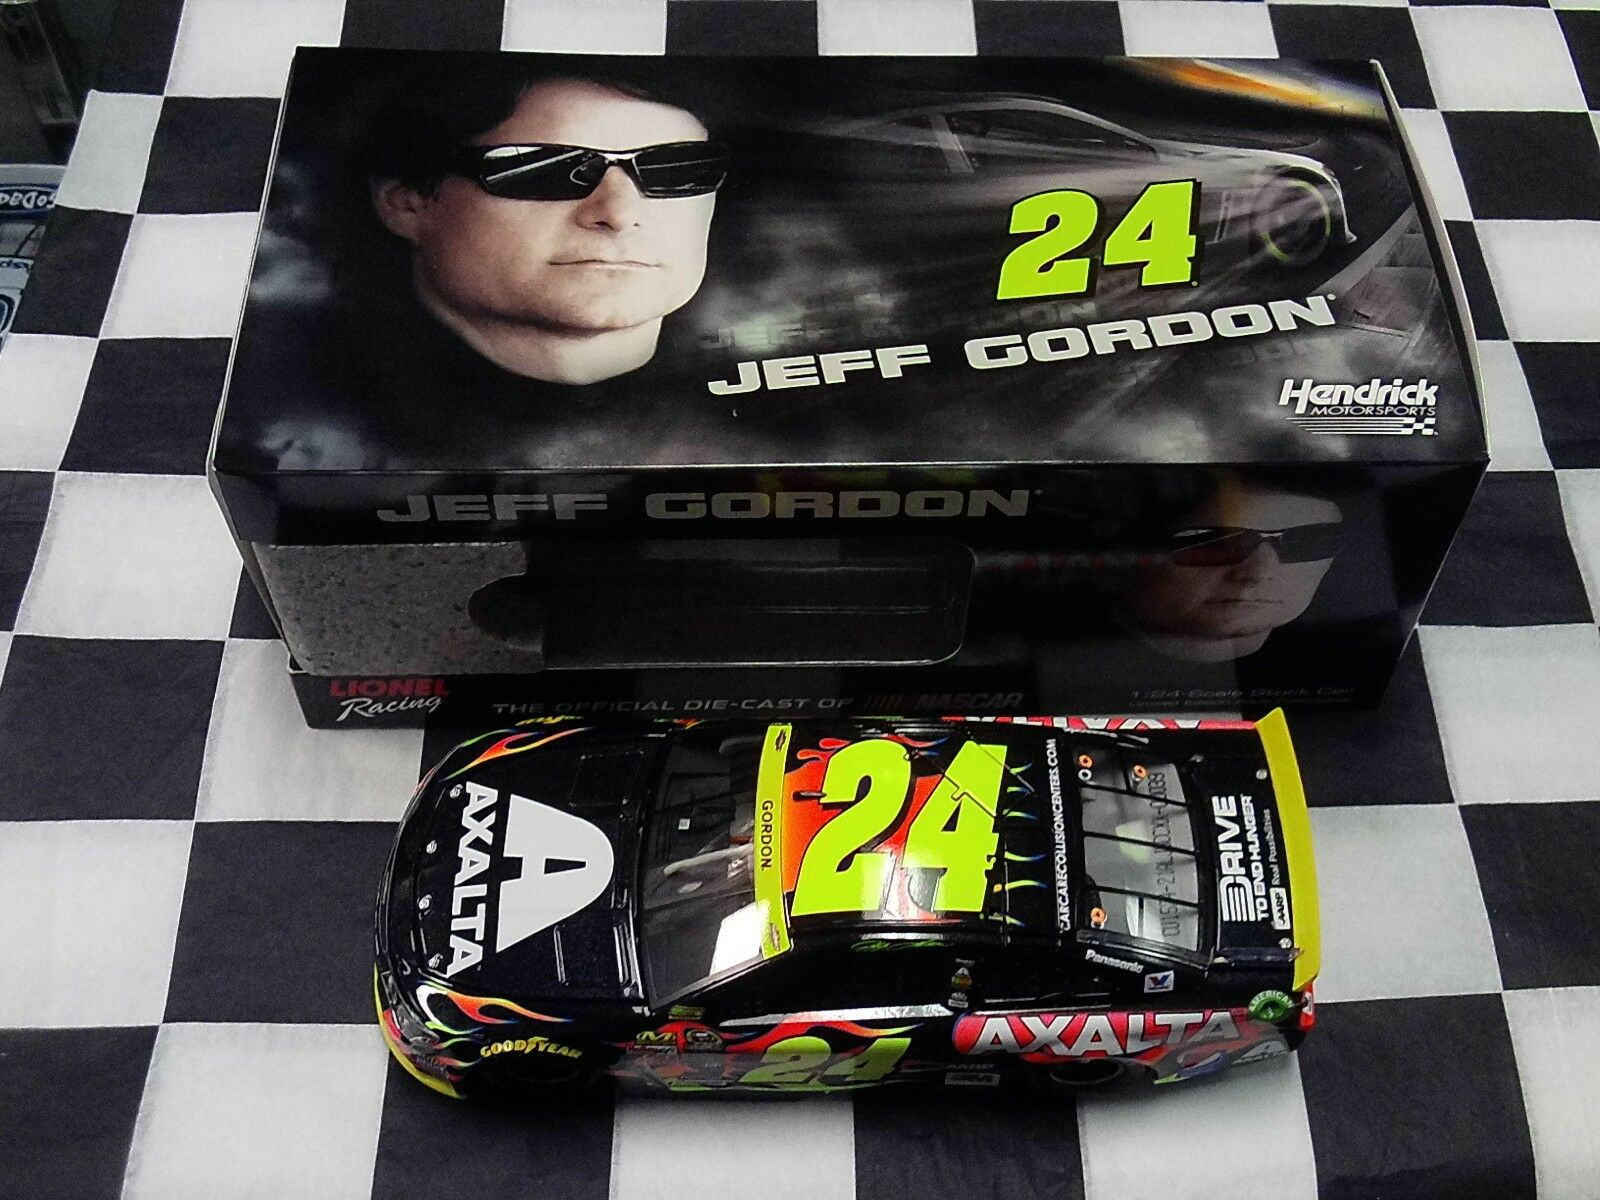 Jeff Gordon  24 axalta Chase 4 la coupe 2015 1 24 Action NEW IN BOX NASCAR C 245821 aljgcc